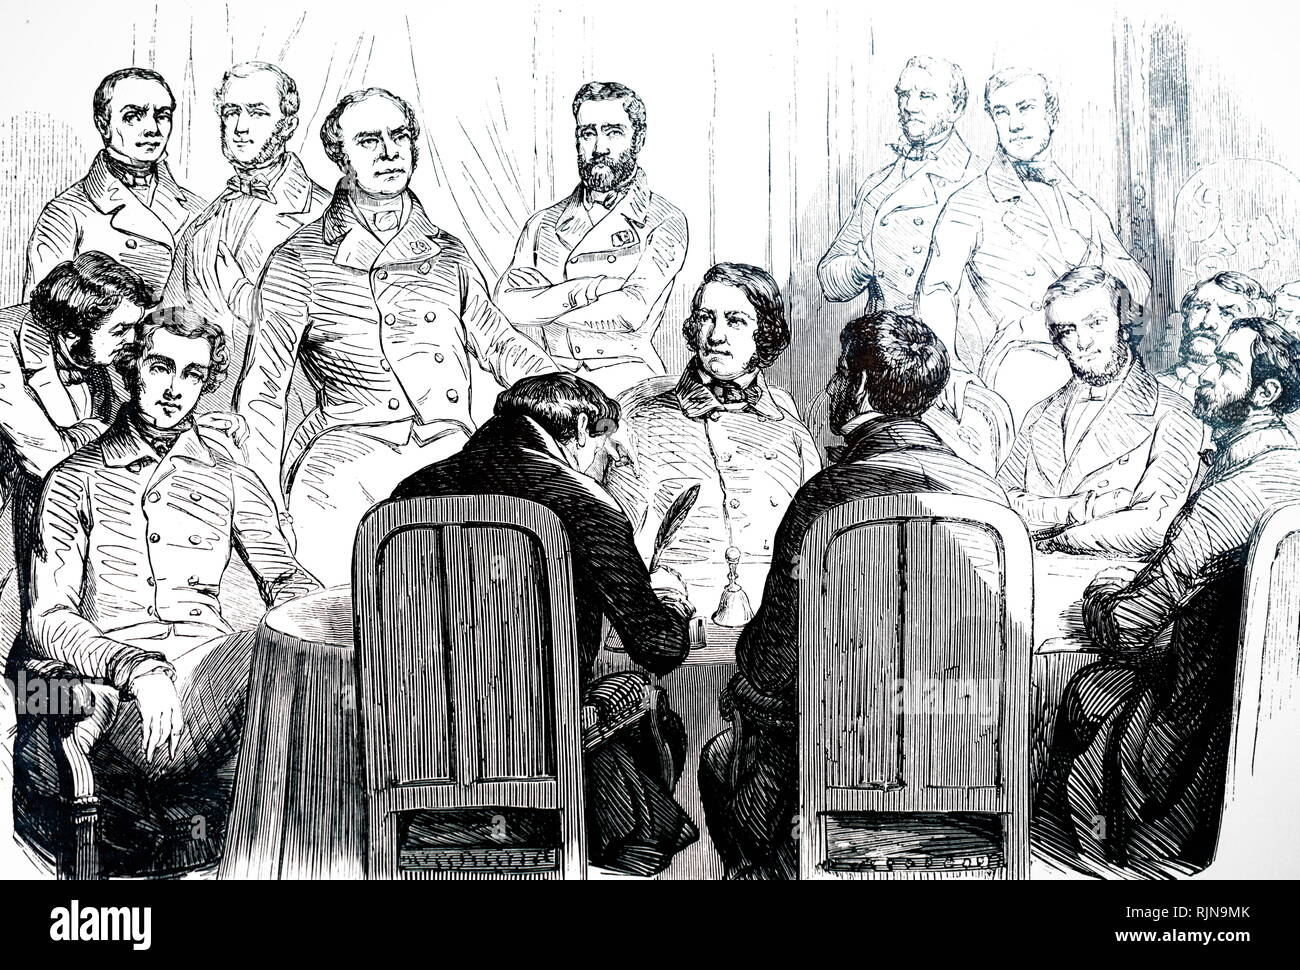 An engraving depicting the sitting of the Commission for the revision of the French constitution. Dated 19th century - Stock Image